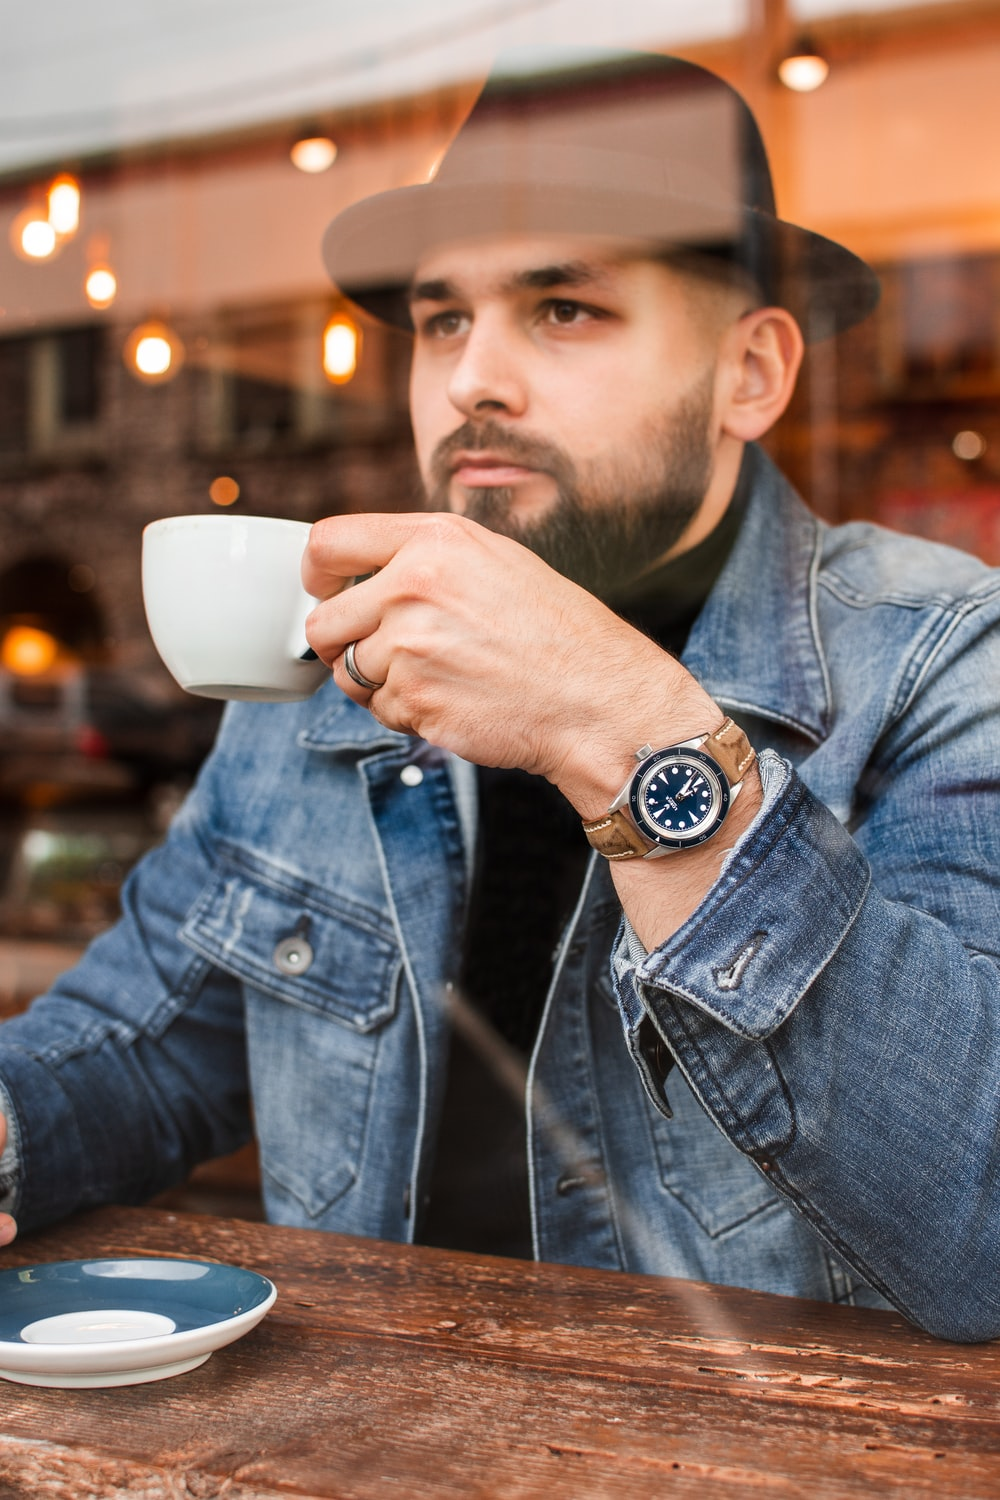 man drinking coffee in room